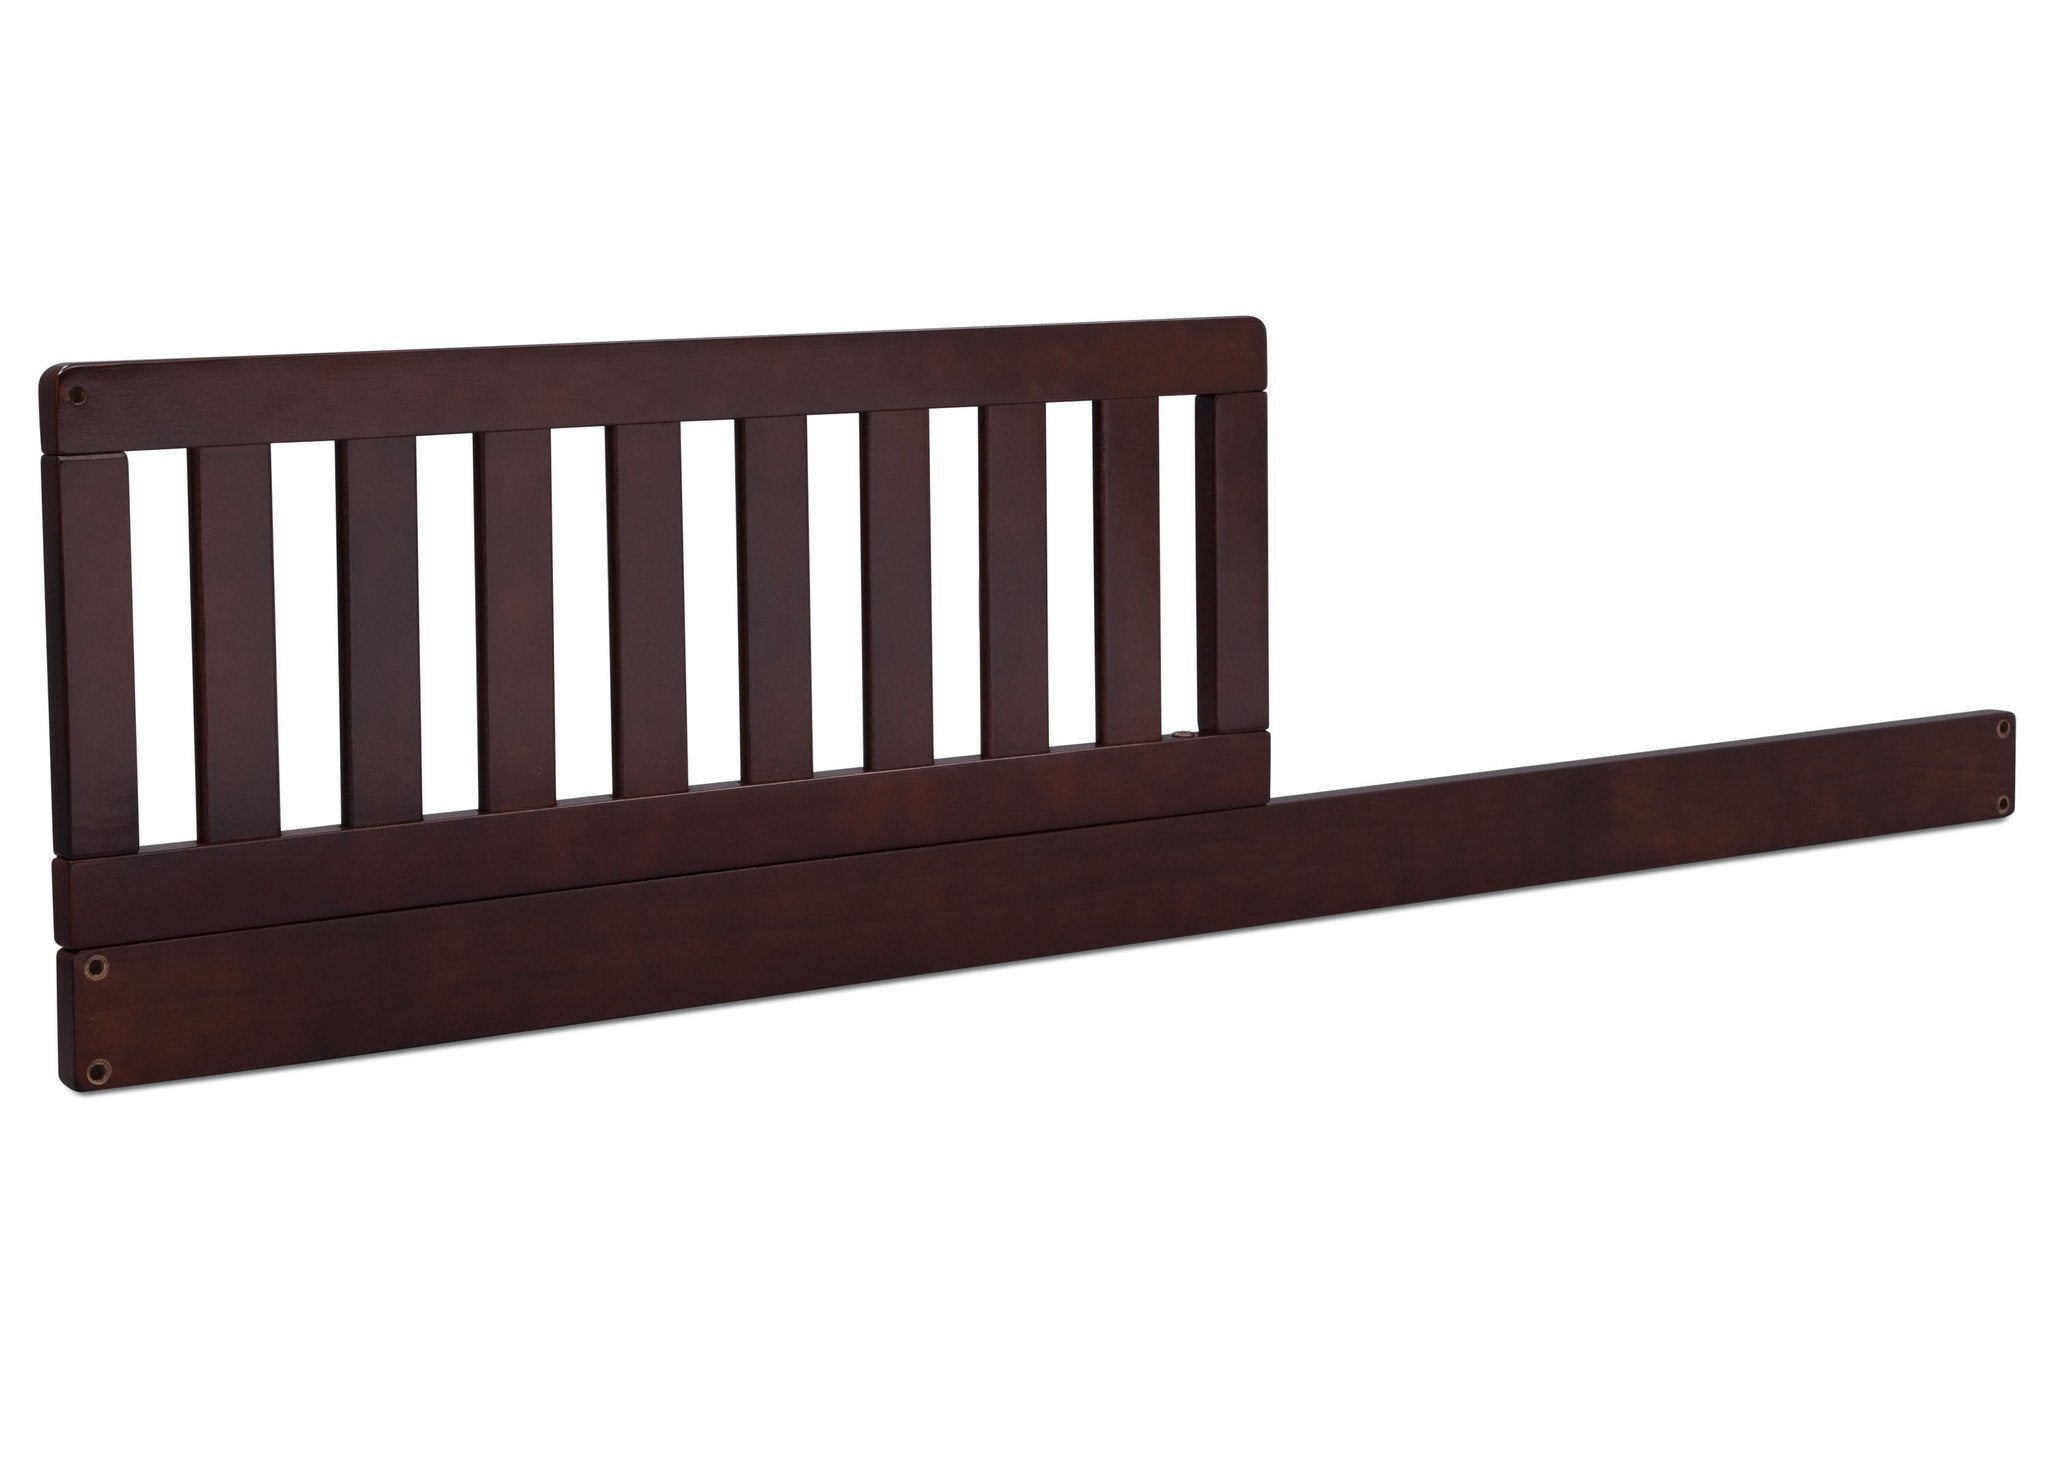 Dark Chocolate (207ST) Toddler Guardrail/Daybed Rail Kit, Side View c1c